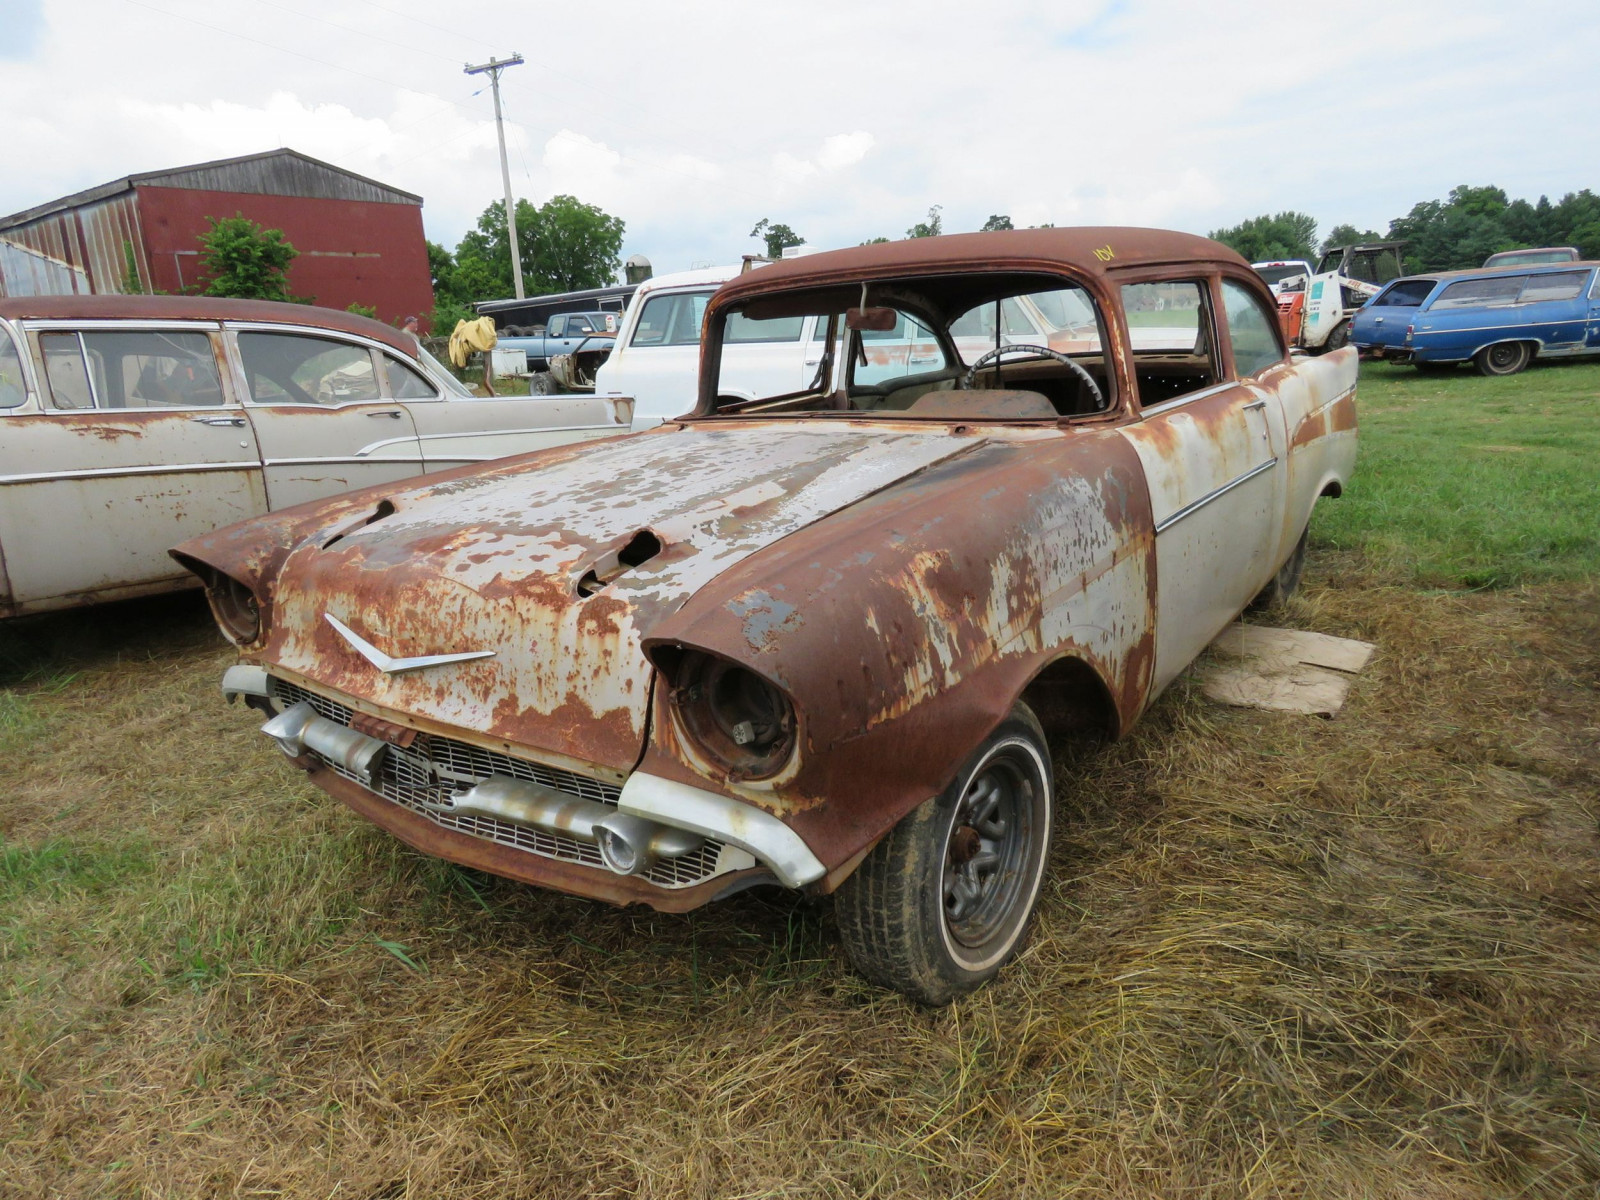 1957 2Dr Sedan Rolling Body for Rod or Restore - Image 1